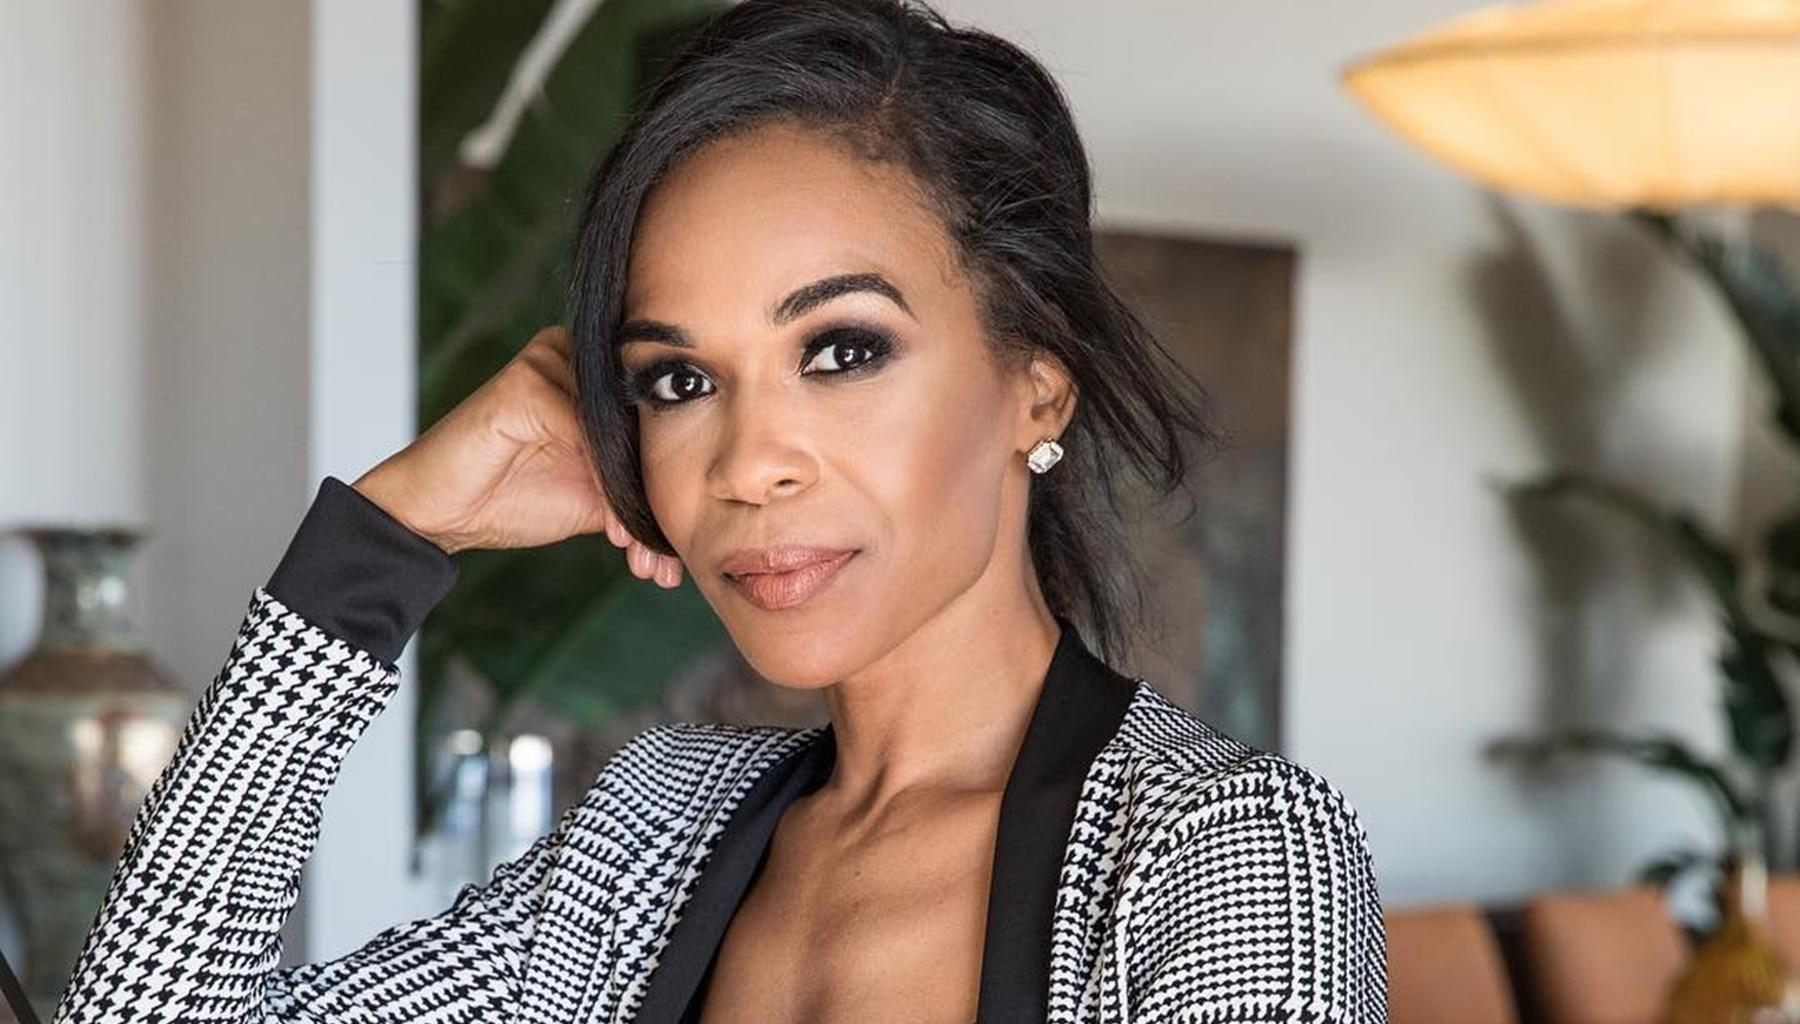 Michelle Williams Flaunts Her Oiled-Up Abs In Sizzling Picture After Reconciling With Fiancé Chad Johnson -- Some Fans Are Still Asking For Destiny's Child To Return